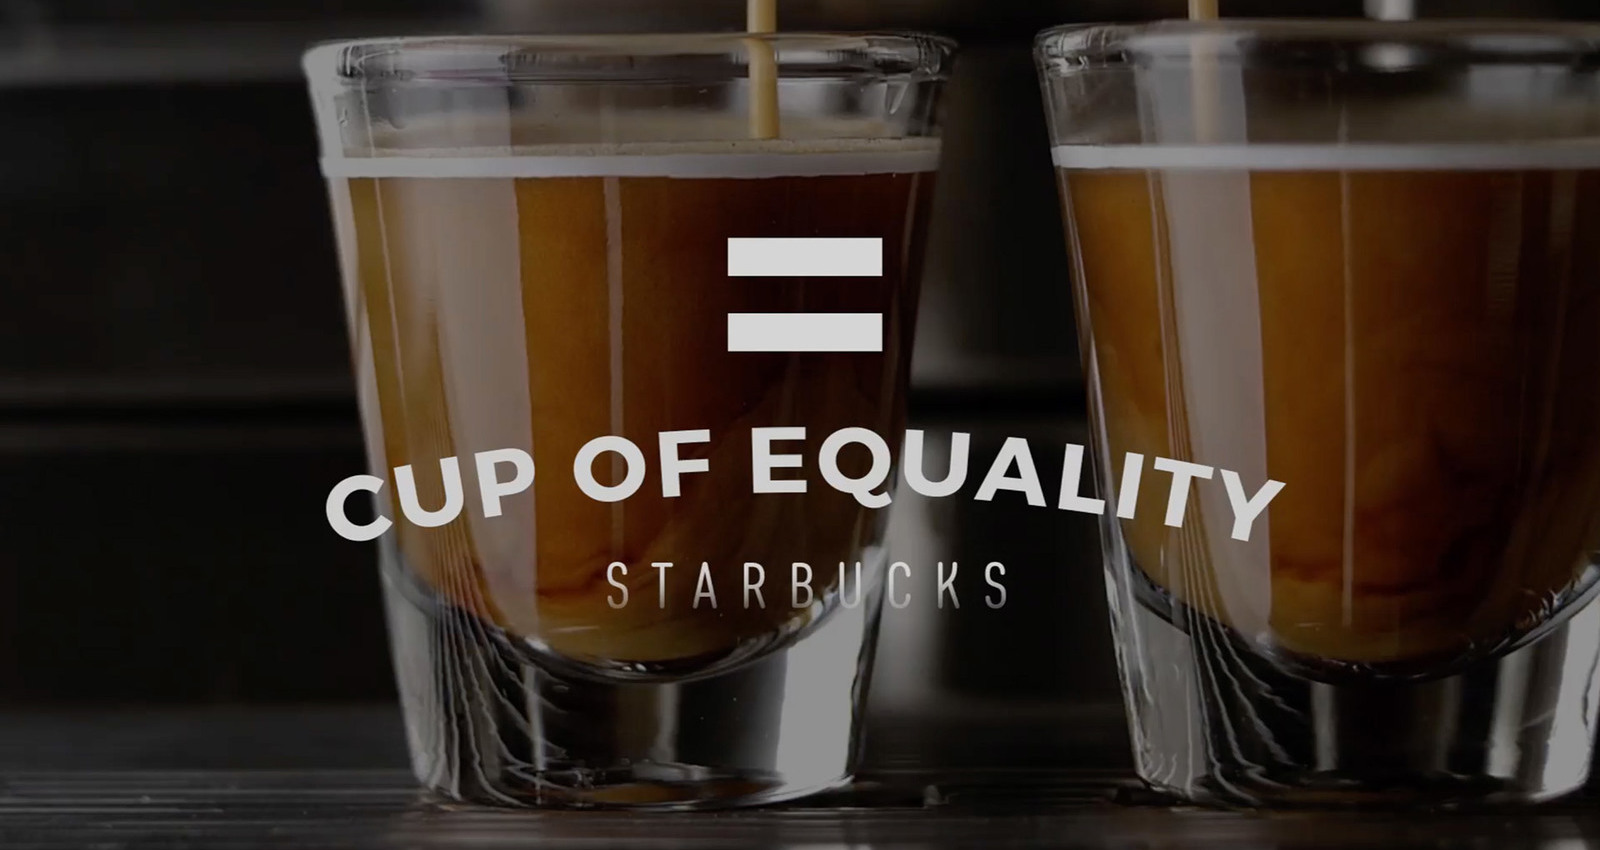 Cup of Equality